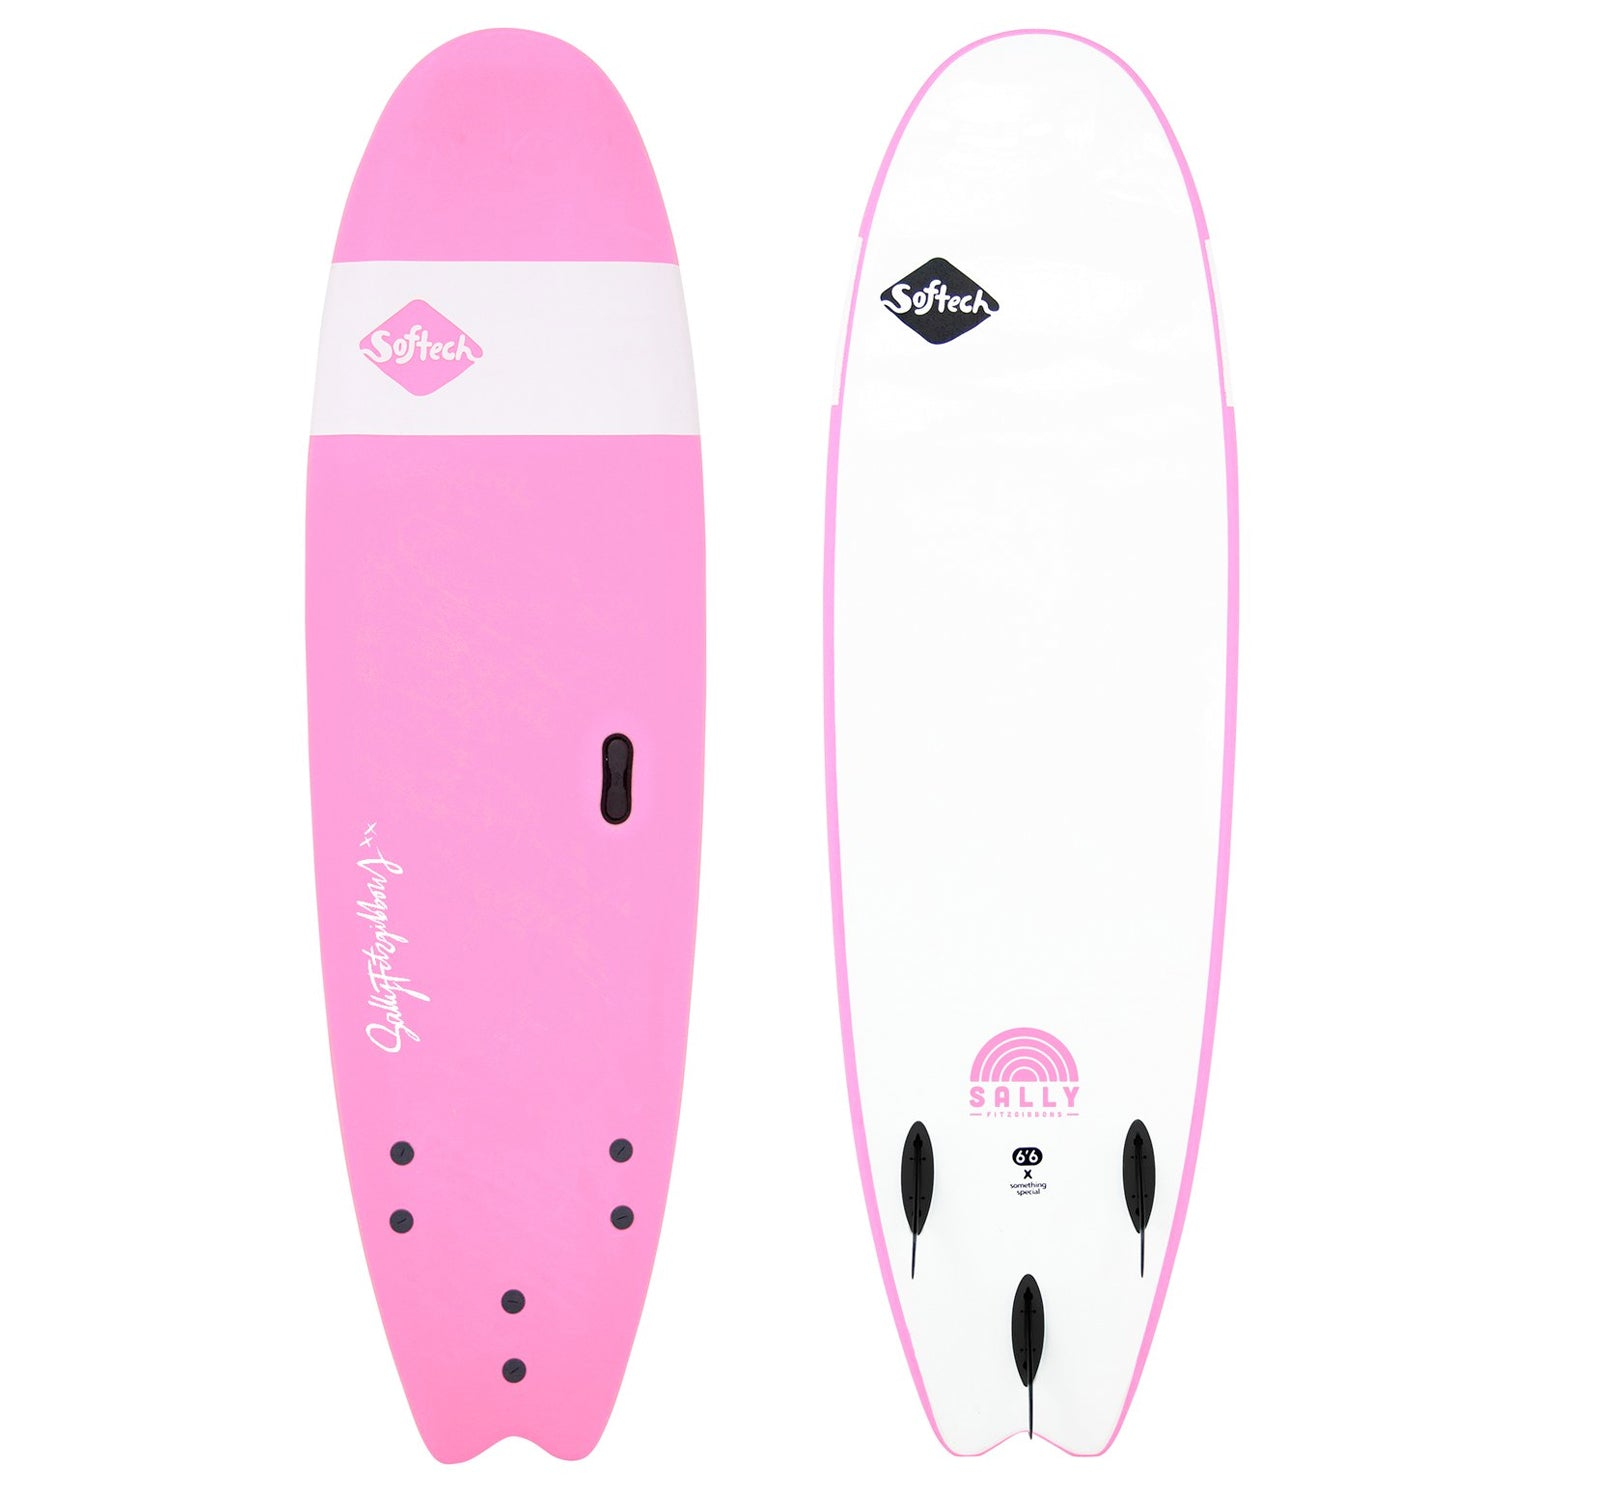 Softech Sally Fitzgibbons Handshaped Soft Surfboard